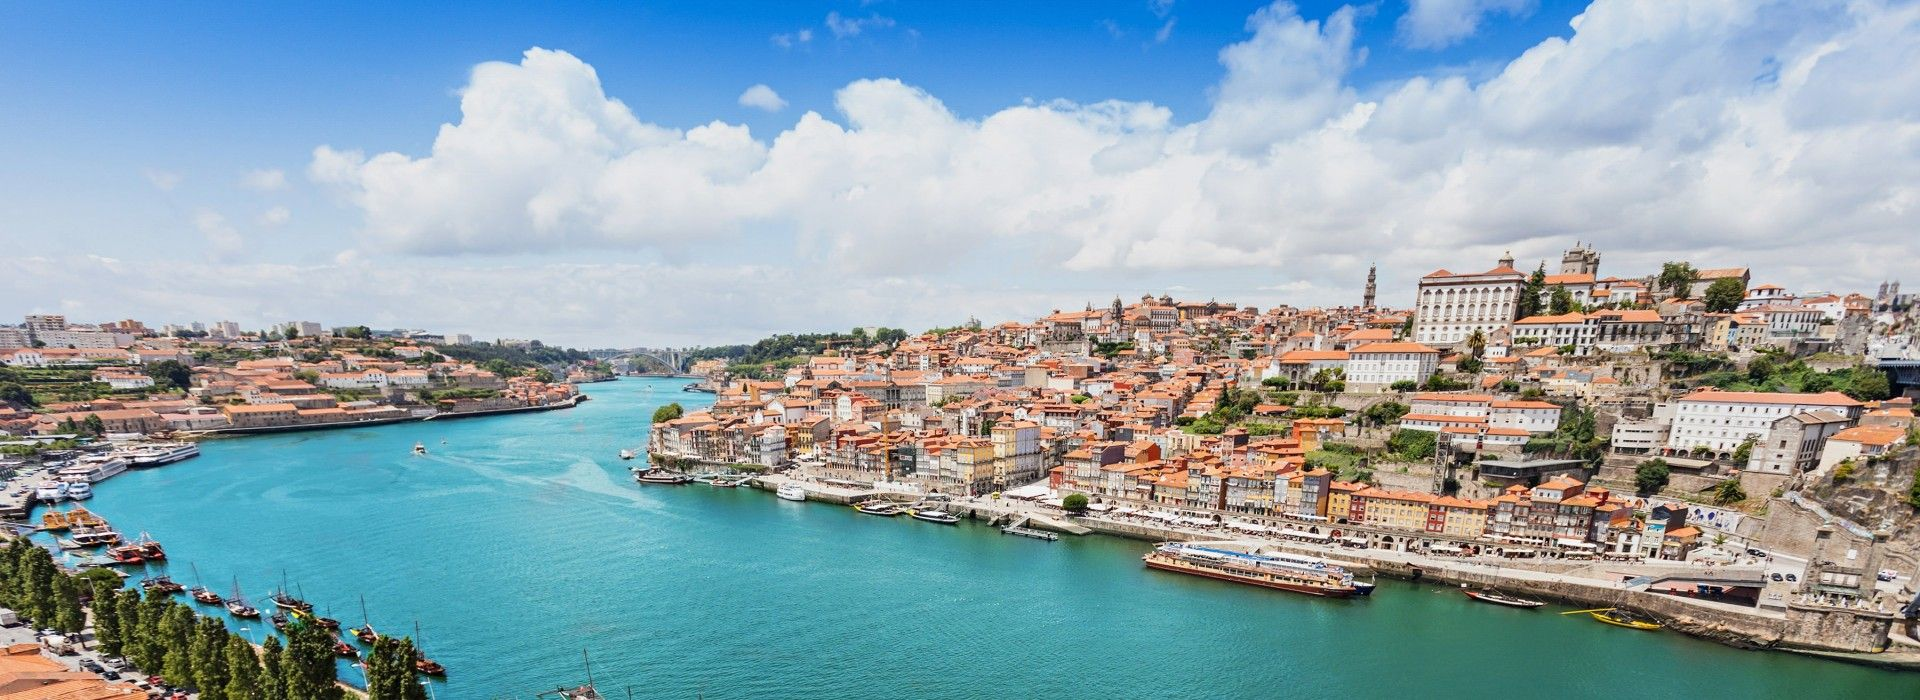 Special interests and hobbies Tours in Lisbon